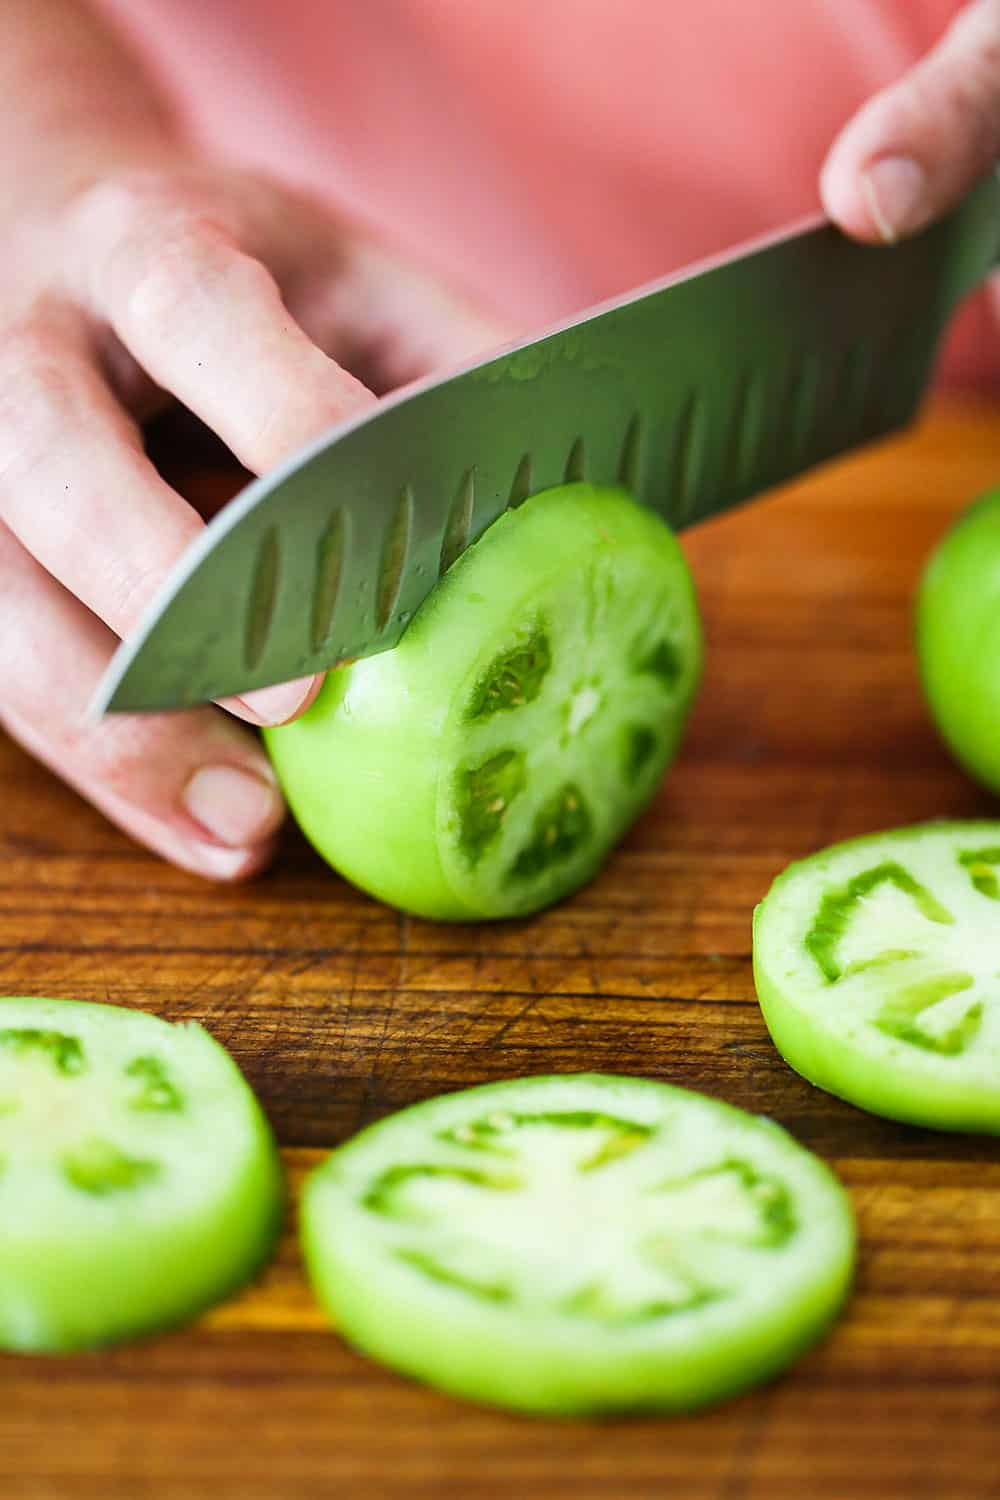 A person using a chef's knife to slice a green tomato on a cutting board with slices scattered around.